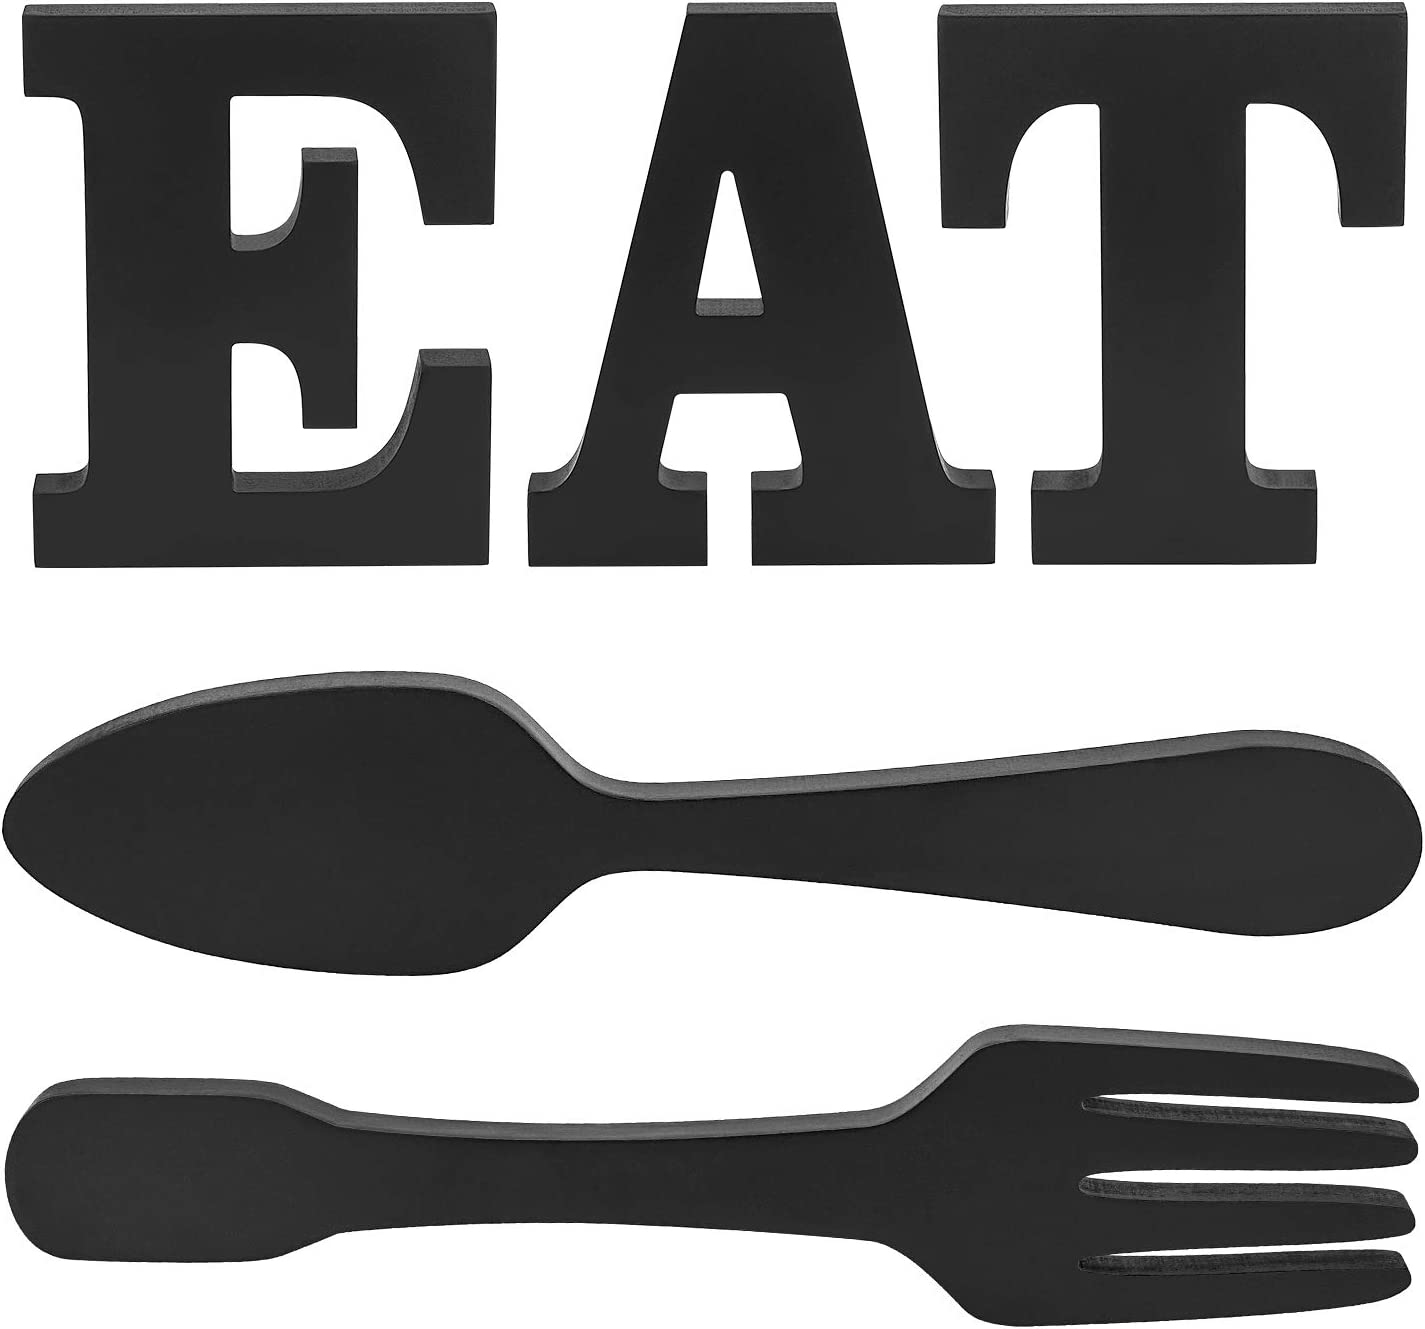 Biewoos EAT Letter Sign + Fork Spoon Wall Hanging Sign,Large Wooden Letters for Kitchen Sign Dinning Room Restaurant Coffee Shop Wall Mounted Decoration (Black)